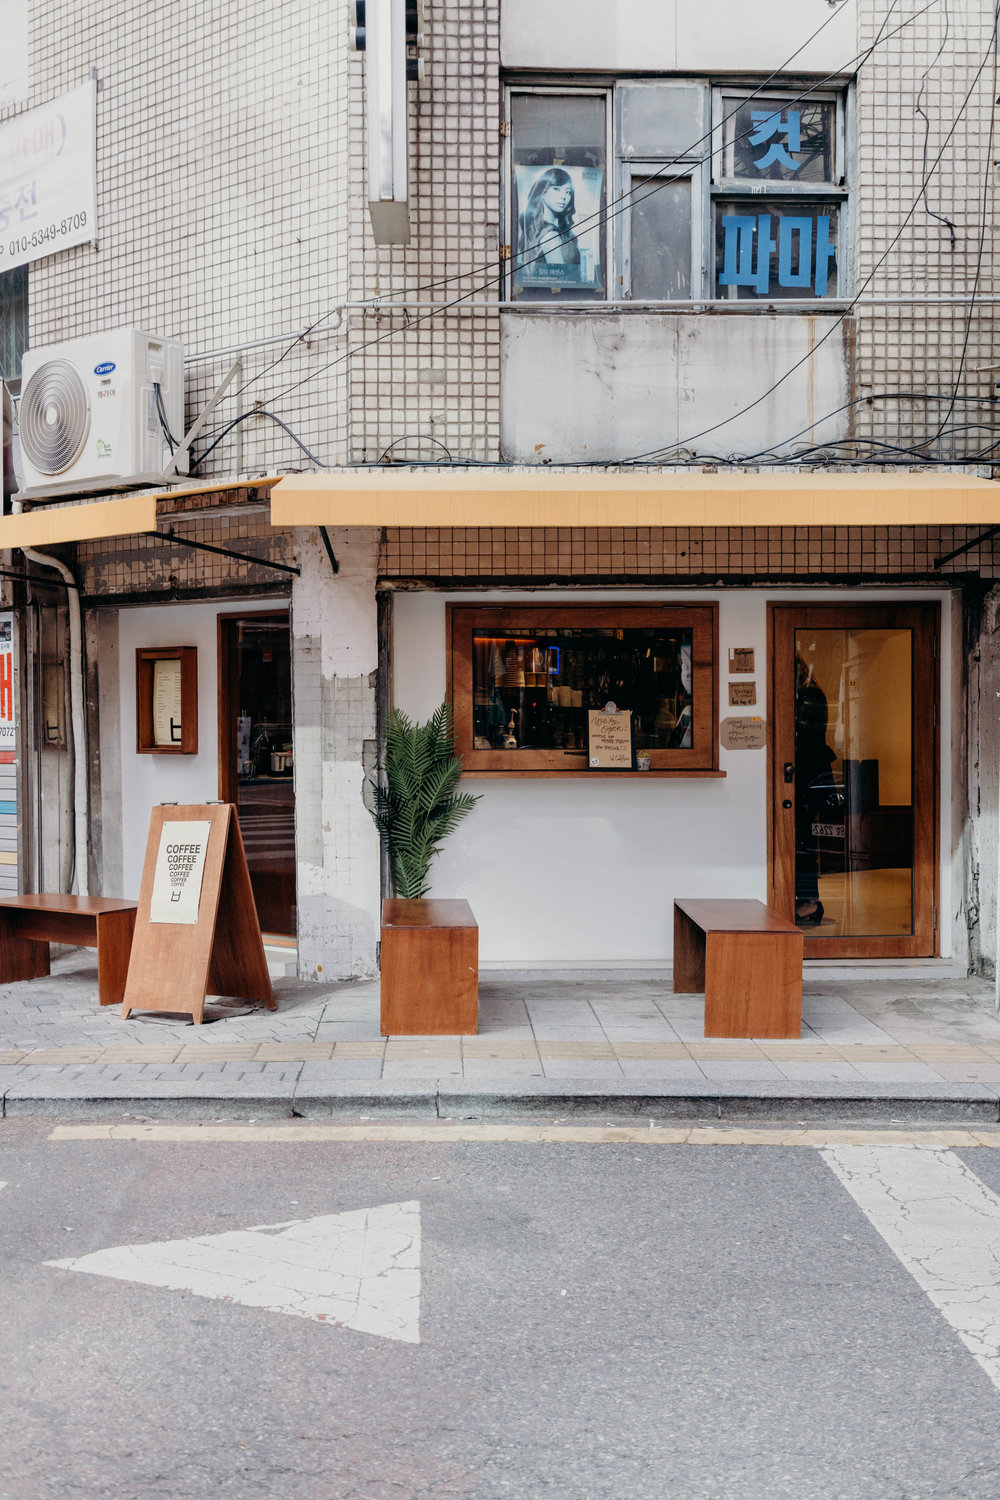 Beup Coffee: An Old-School Coffee Shop in Central Seoul   On the Street Where We Live ( aretherelilactrees.com )  ㅂ Coffee, coffee shop, Seoul, South Korea